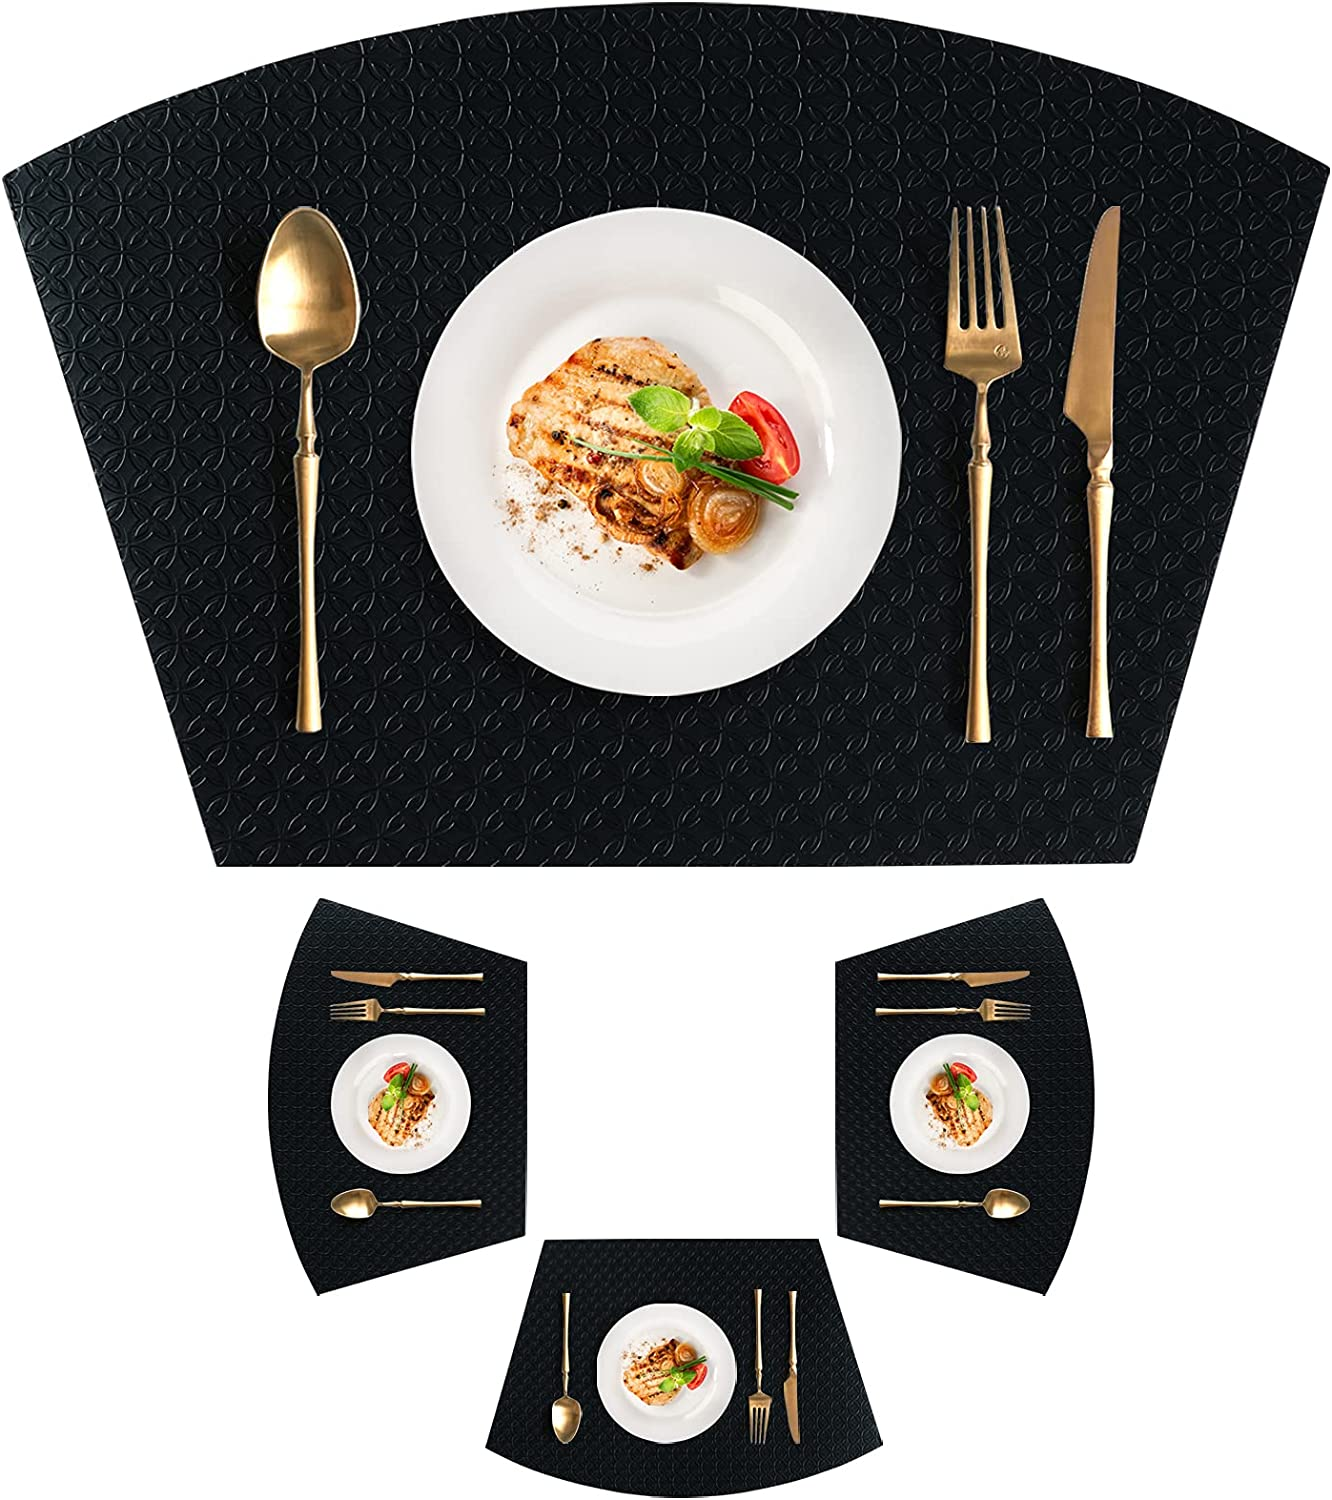 homing Waterproof Placemats Ranking TOP2 for Round Houston Mall Table Heat 4 Set - Resi of